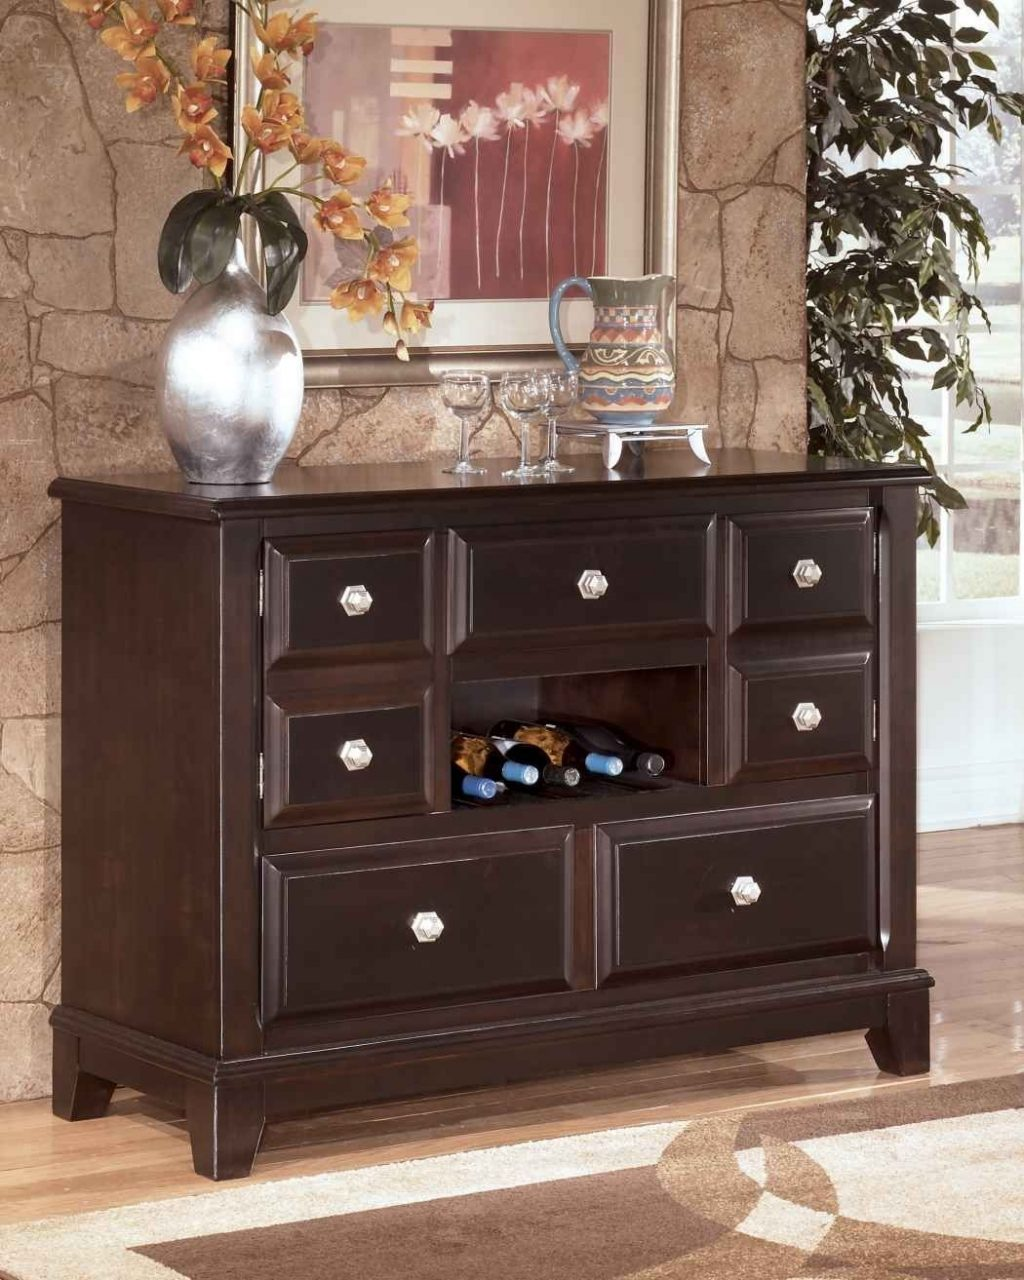 Dining Room Hutch Decorating Ideas Dining Room Decor Ideas And